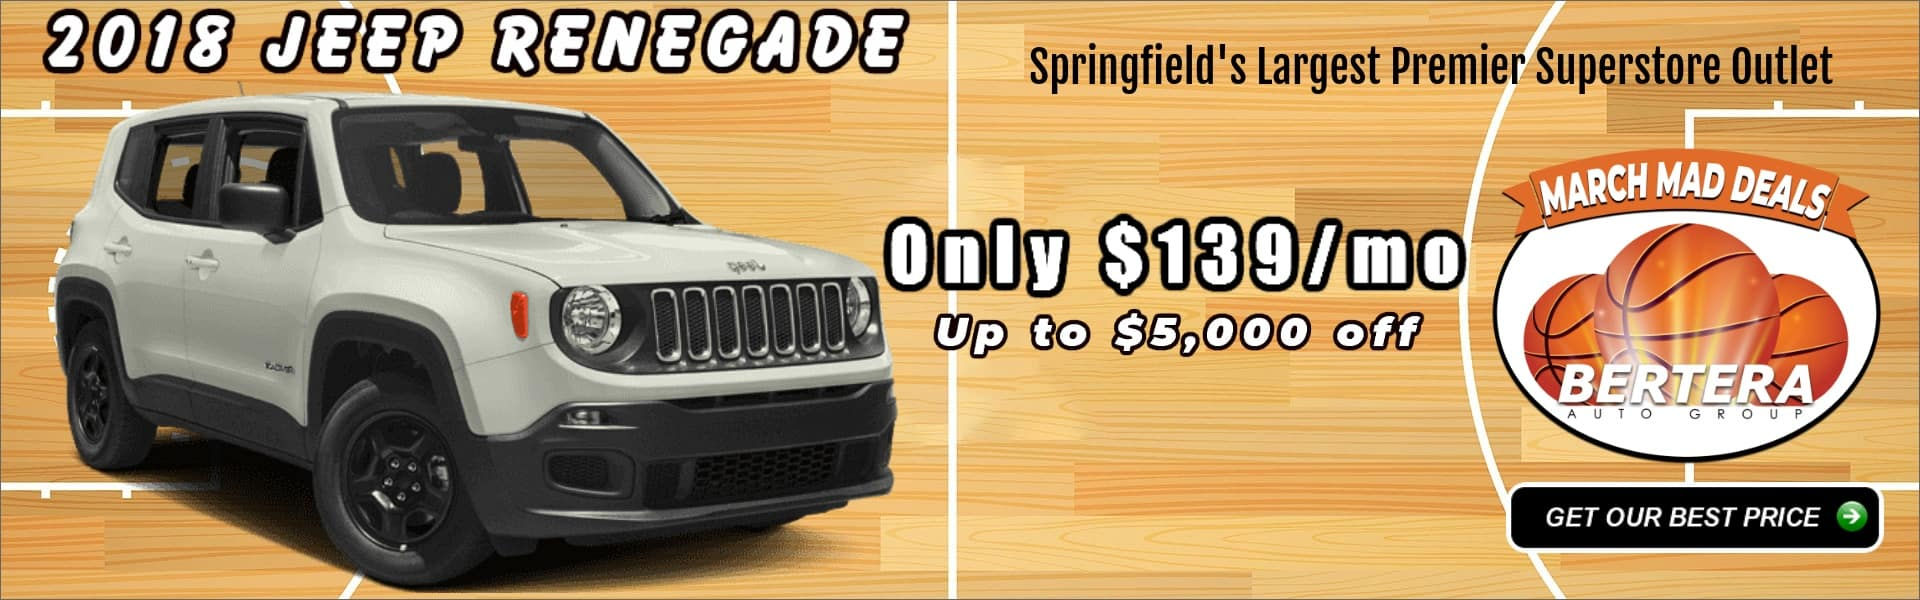 Bertera CJDR of West Springfield | Chrysler, Dodge, Jeep ...